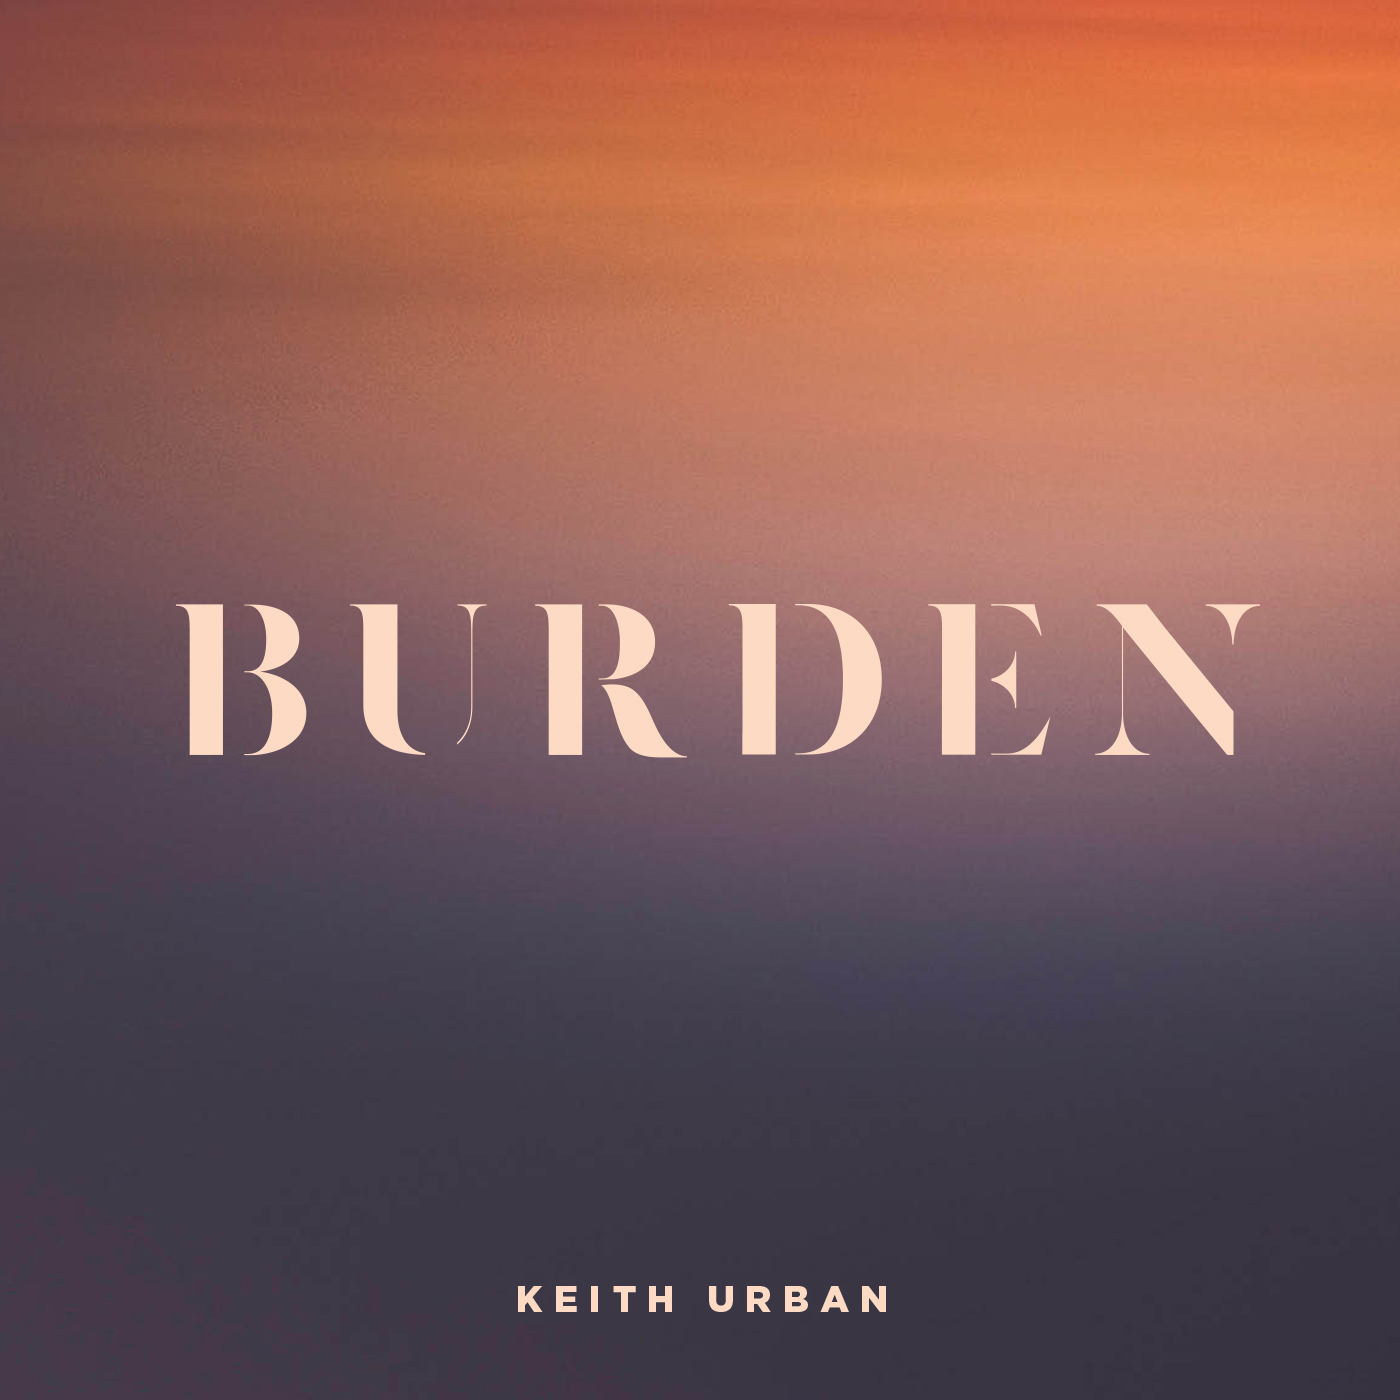 Burden Single Art High Res.jpg